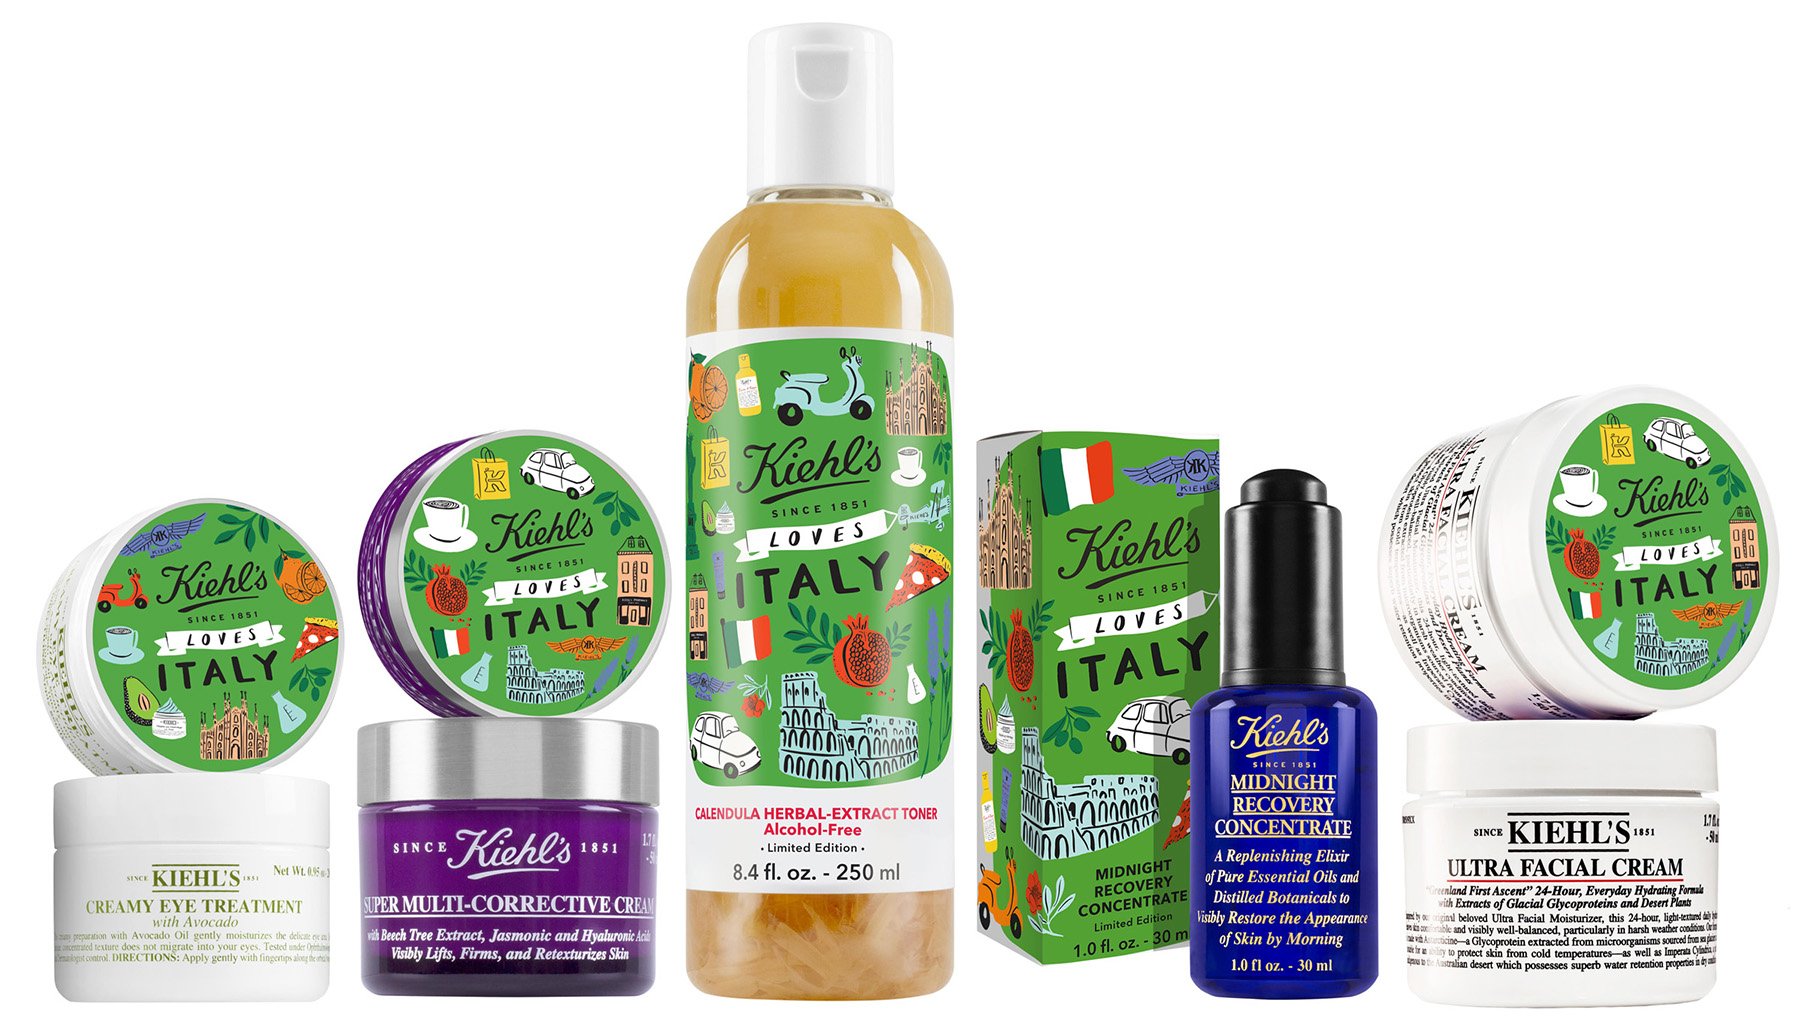 Collezione Kiehls Loves Italy